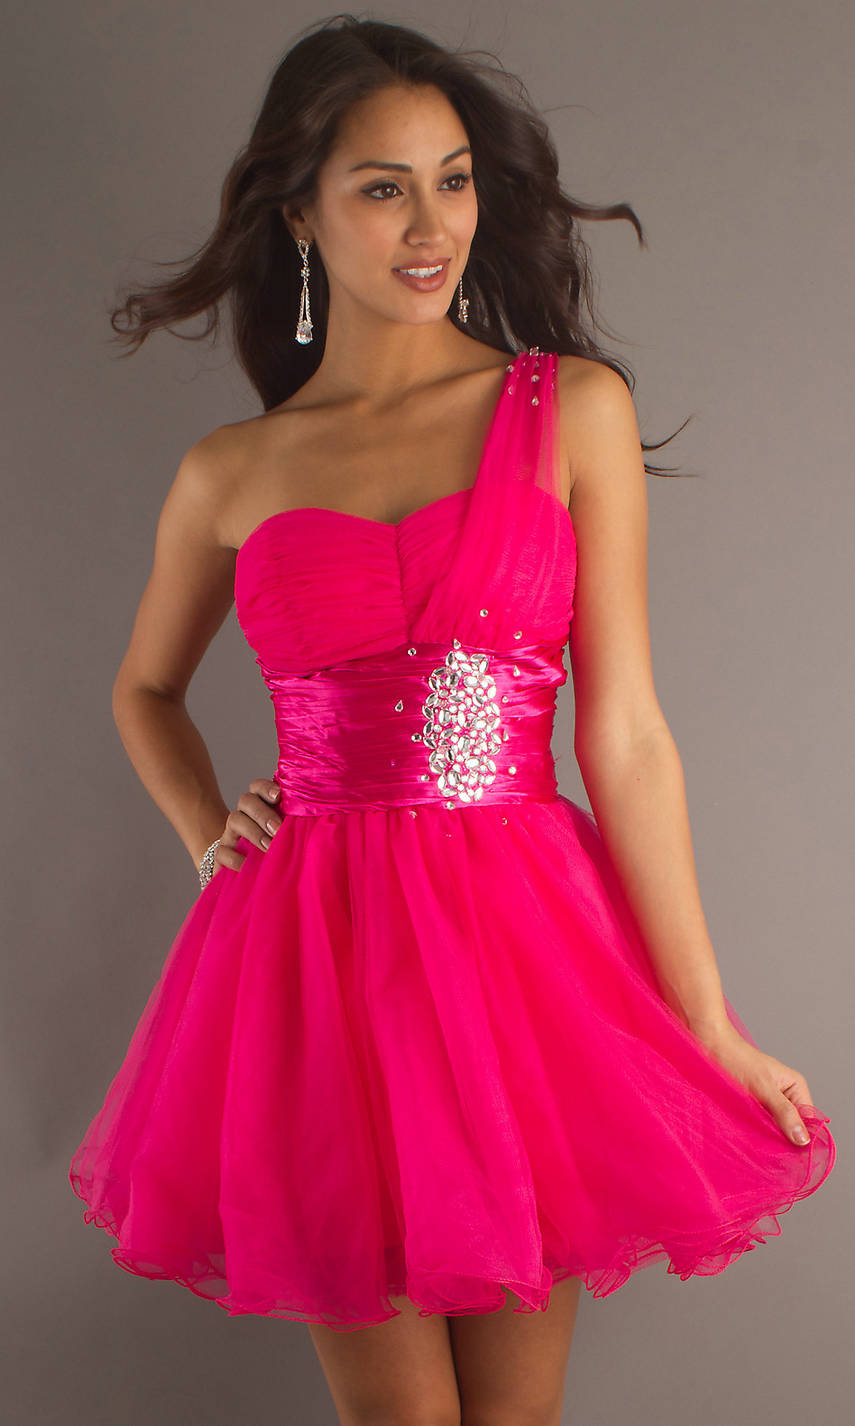 short formal colorful dresses for juniors_Formal Dresses_dressesss